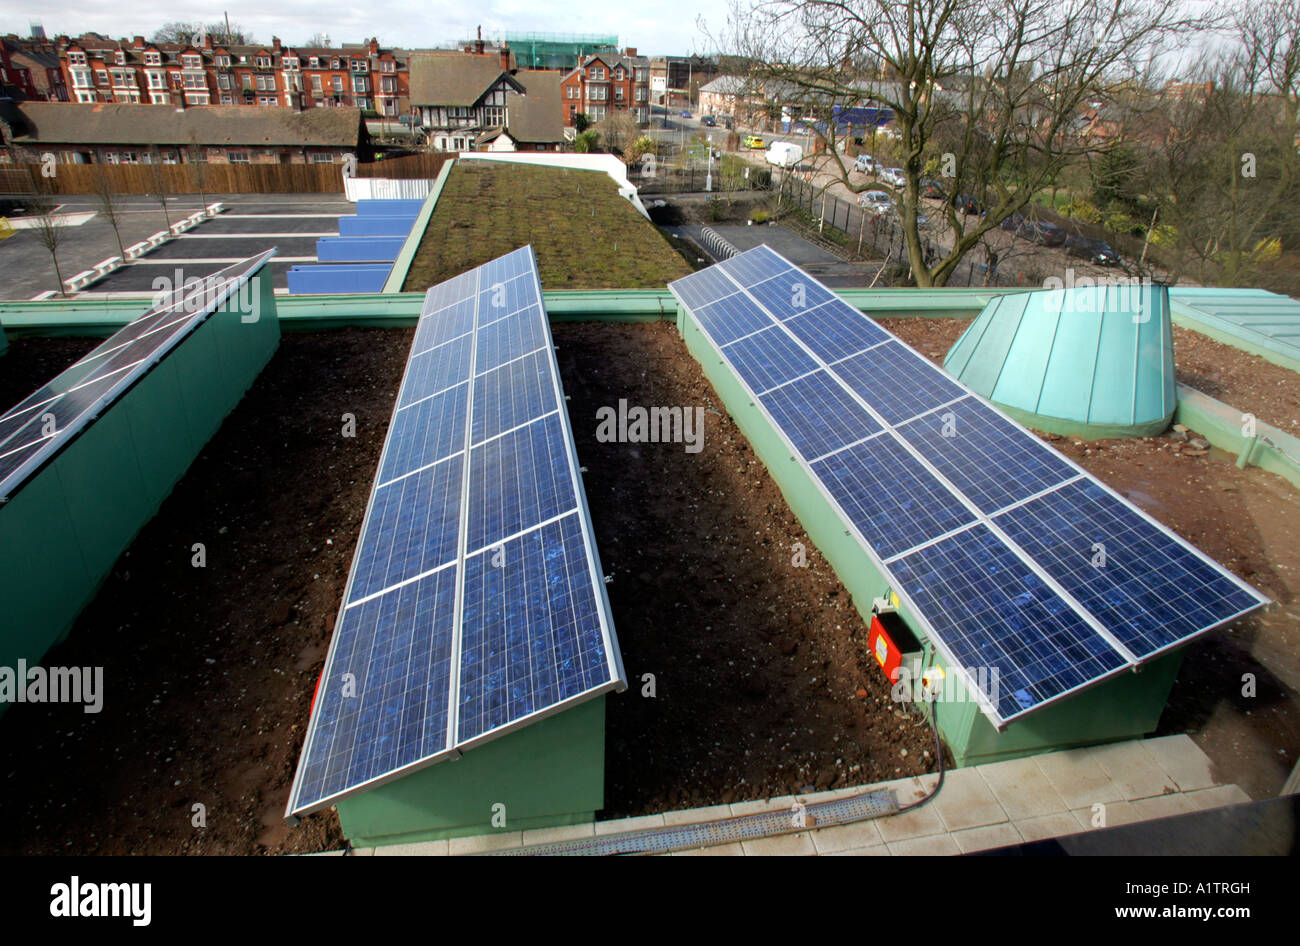 Solar Panels On The Roof Of School Building In Liverpool